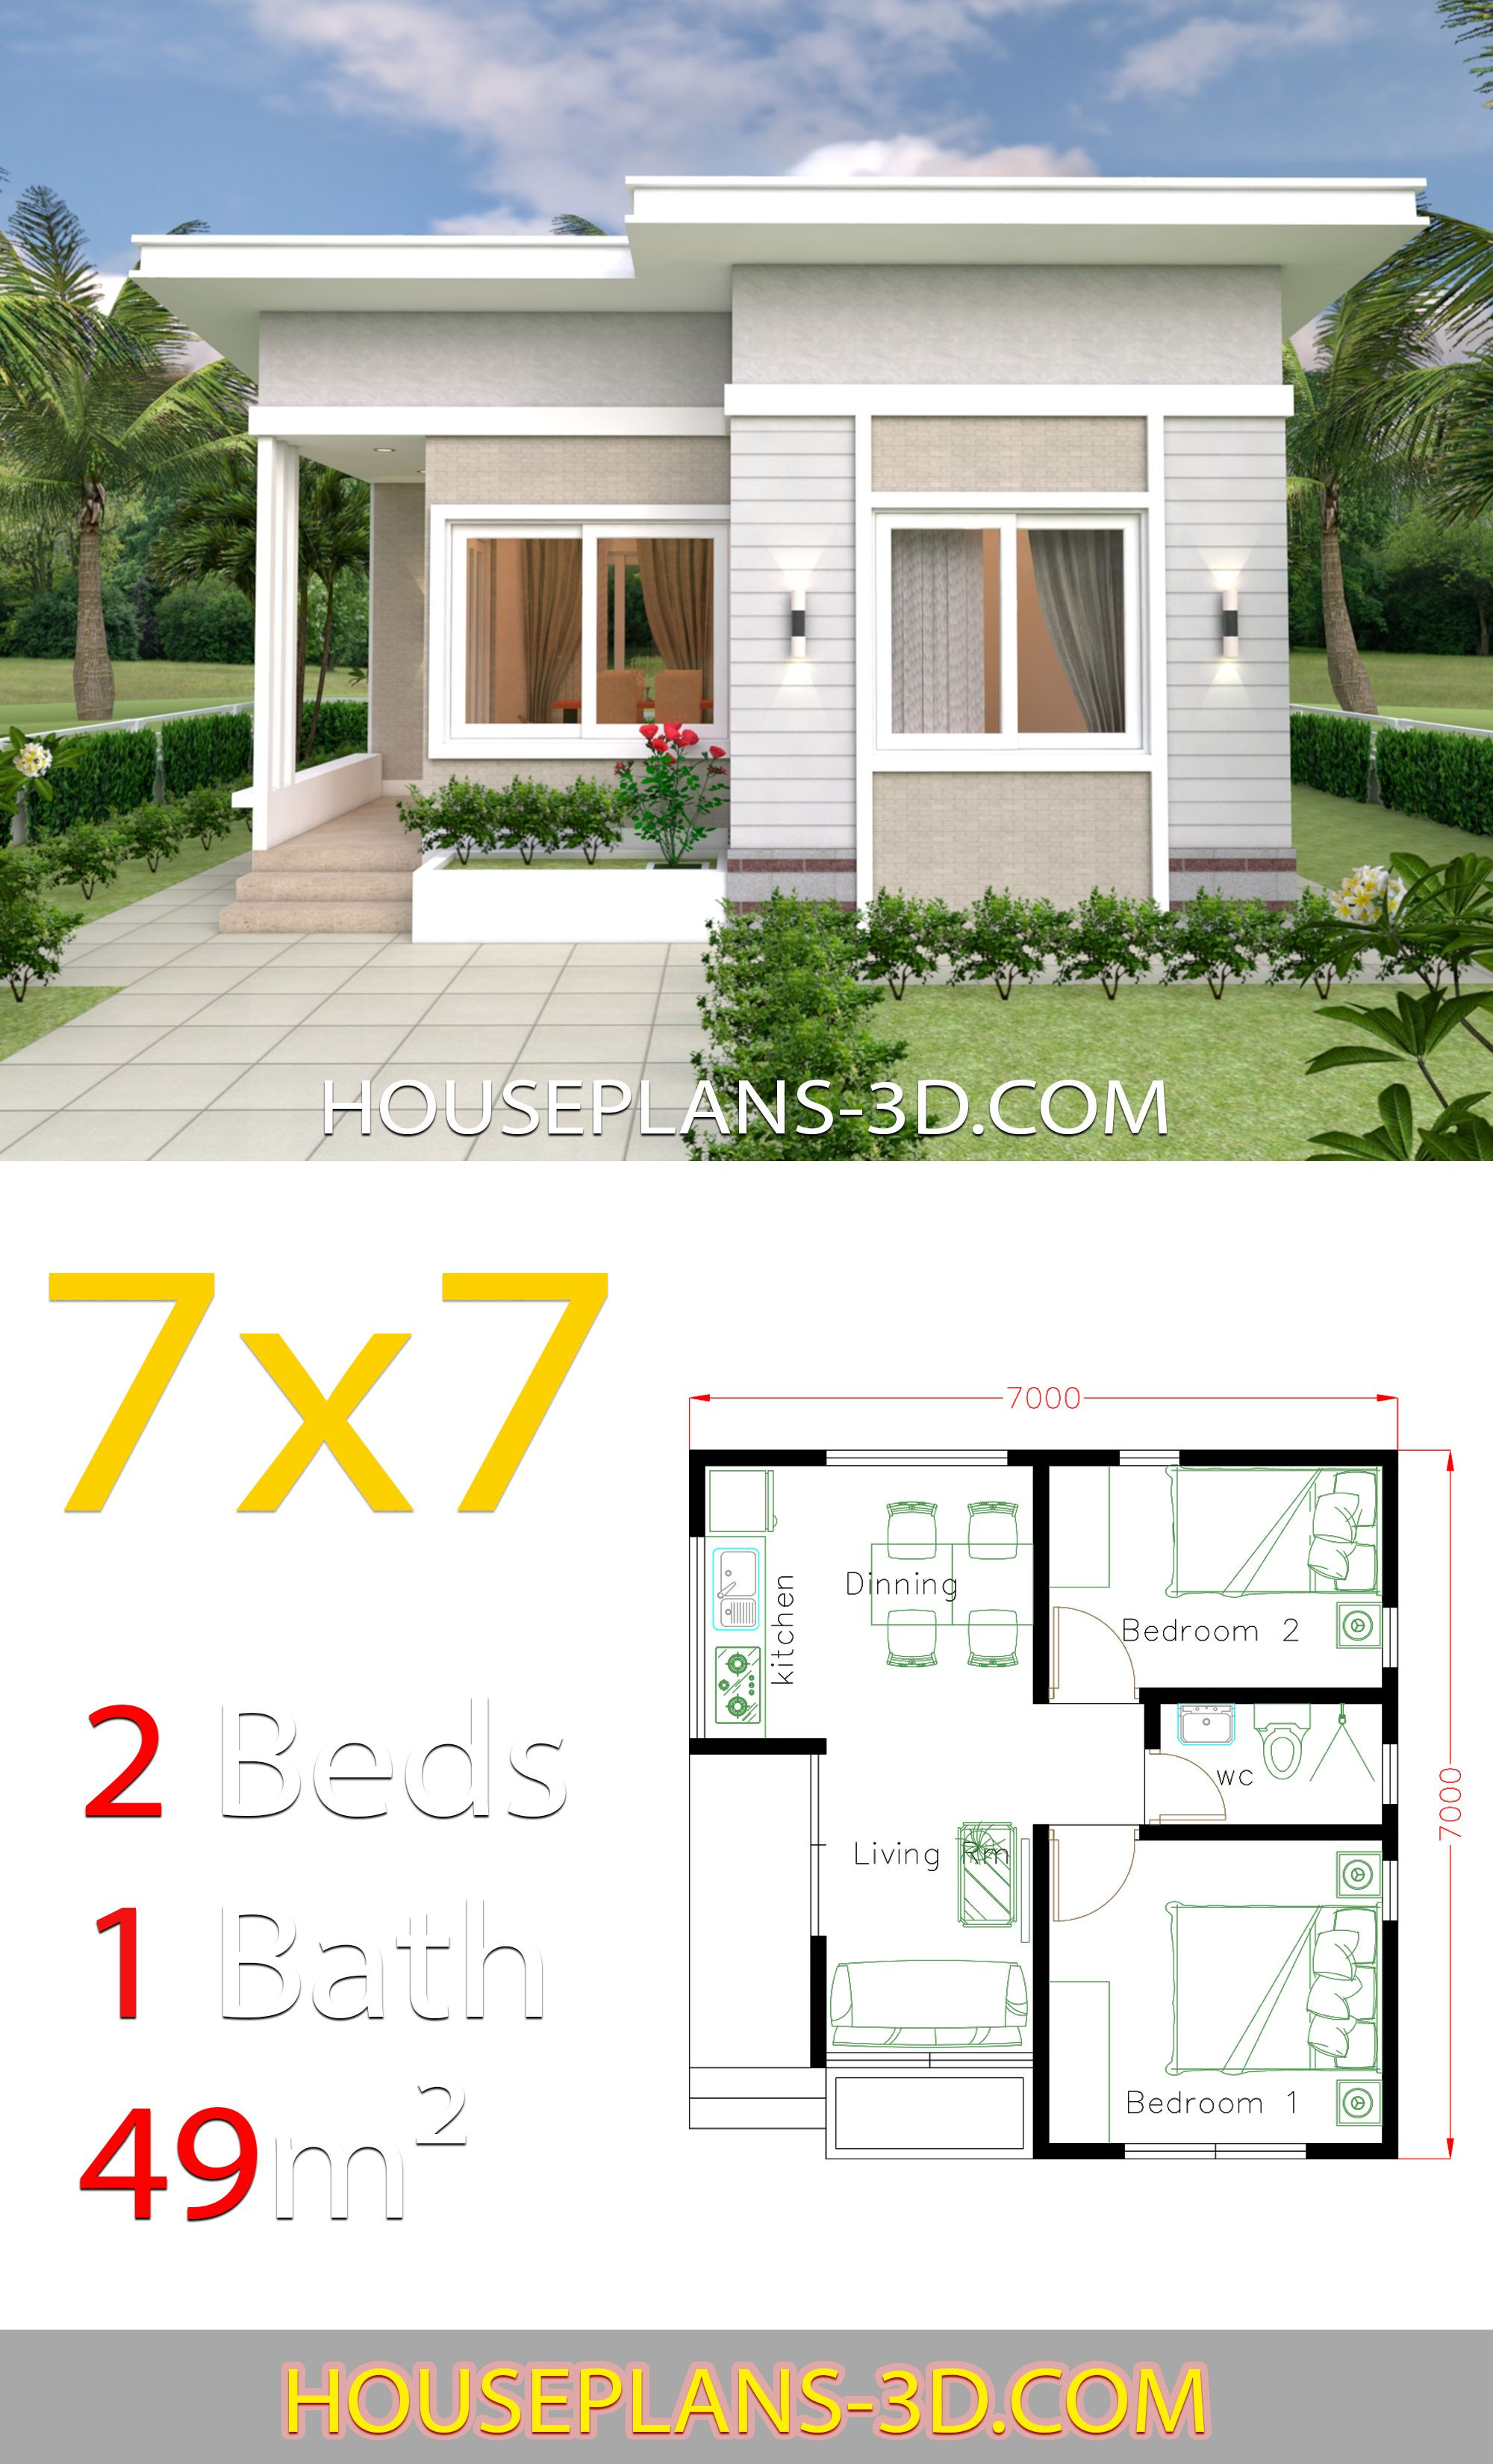 Small House Plans with Pictures Luxury Small House Design 7x7 with 2 Bedrooms Dengan Gambar